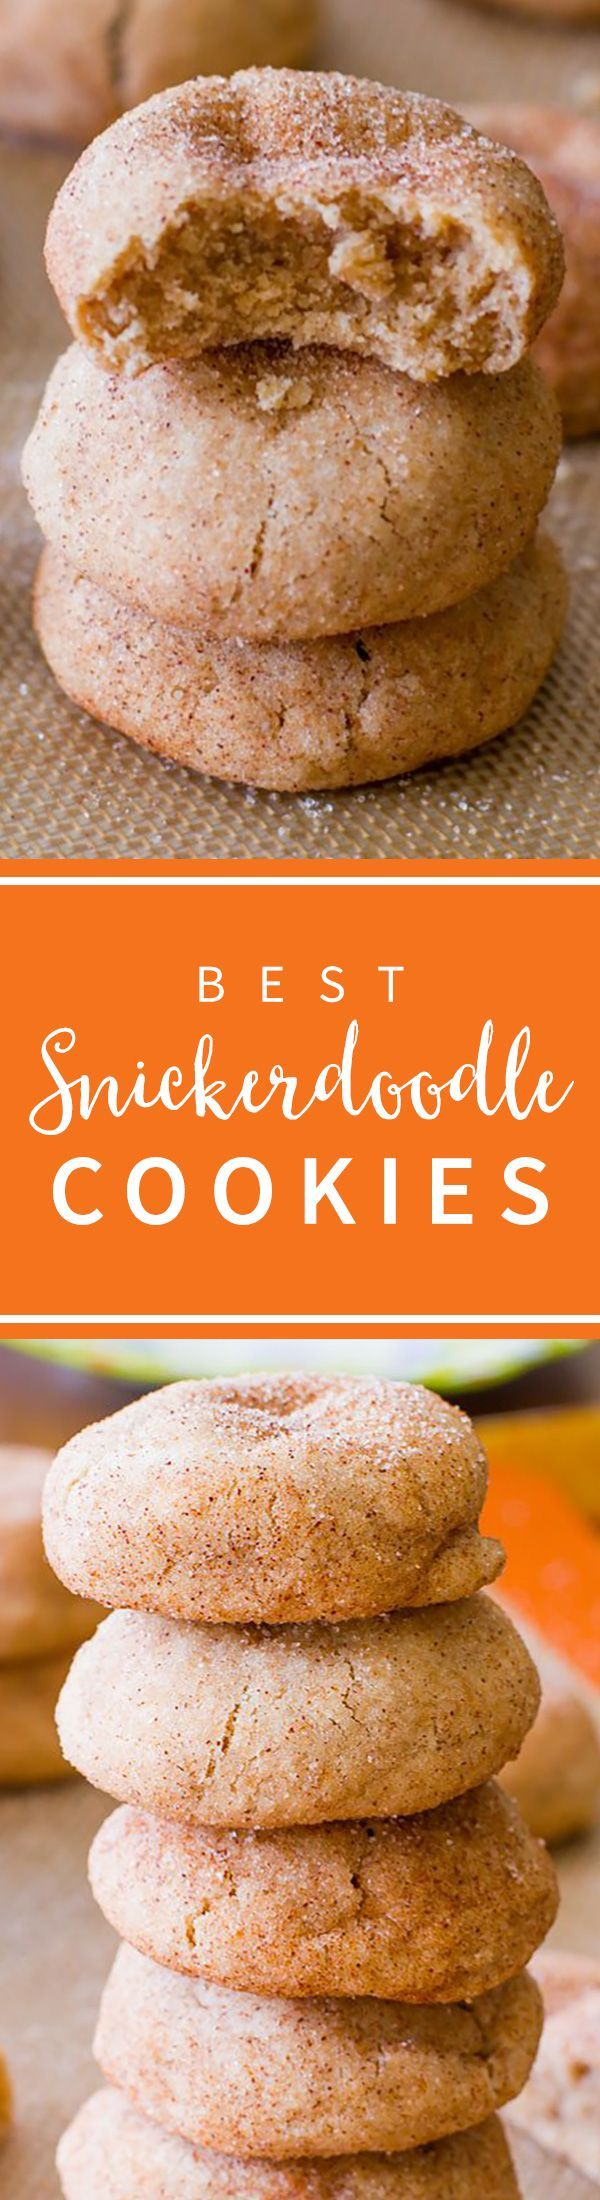 Soft and thick cinnamon snickerdoodles! These snickerdoodle cookies are so easy to make! Recipe on sallysbakingaddiction.com